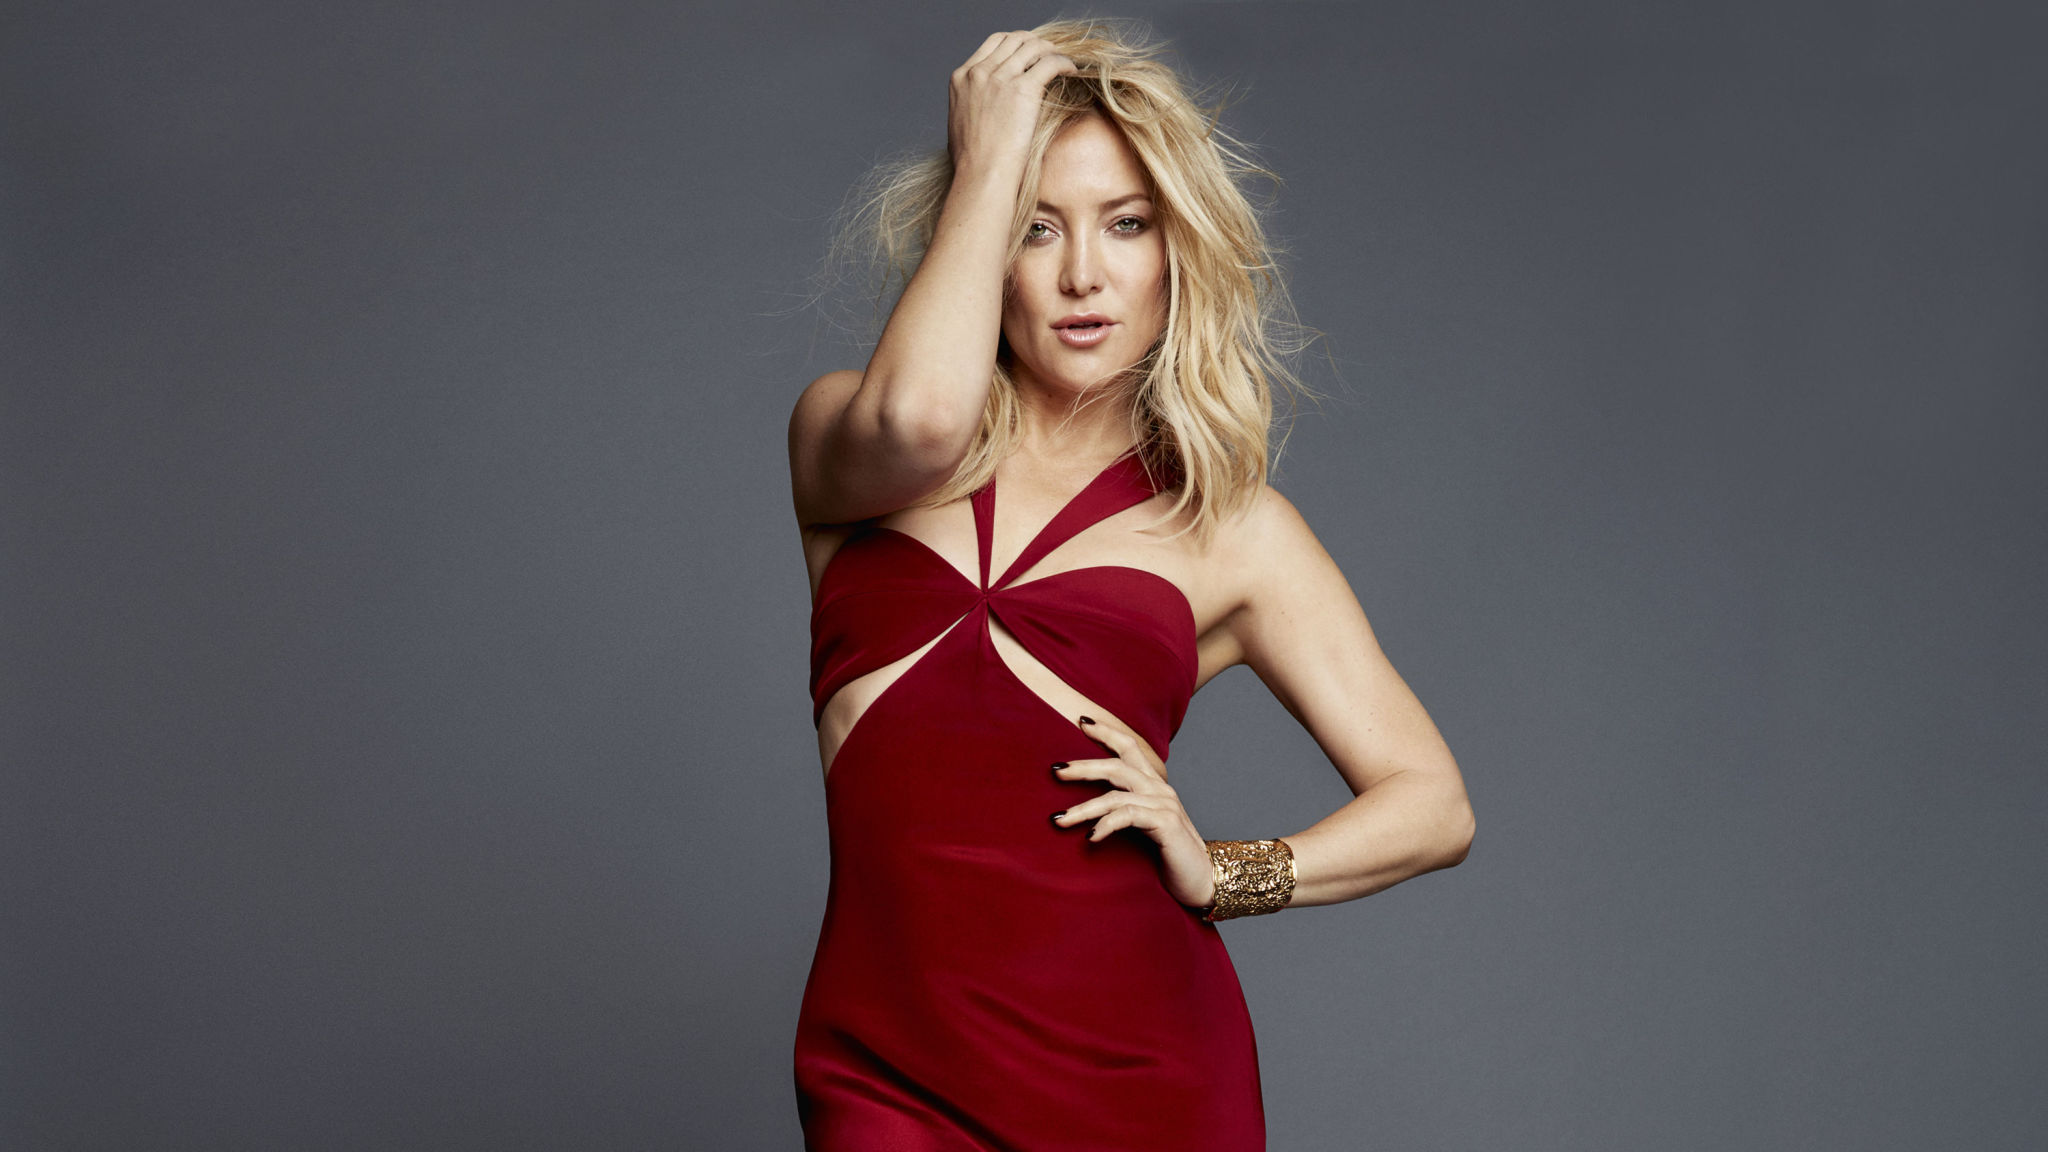 Kate Hudson: Lady in Red on Marie Claire Cover, Explains Why Forgiveness Is Necessary @ the End of a Relationship image